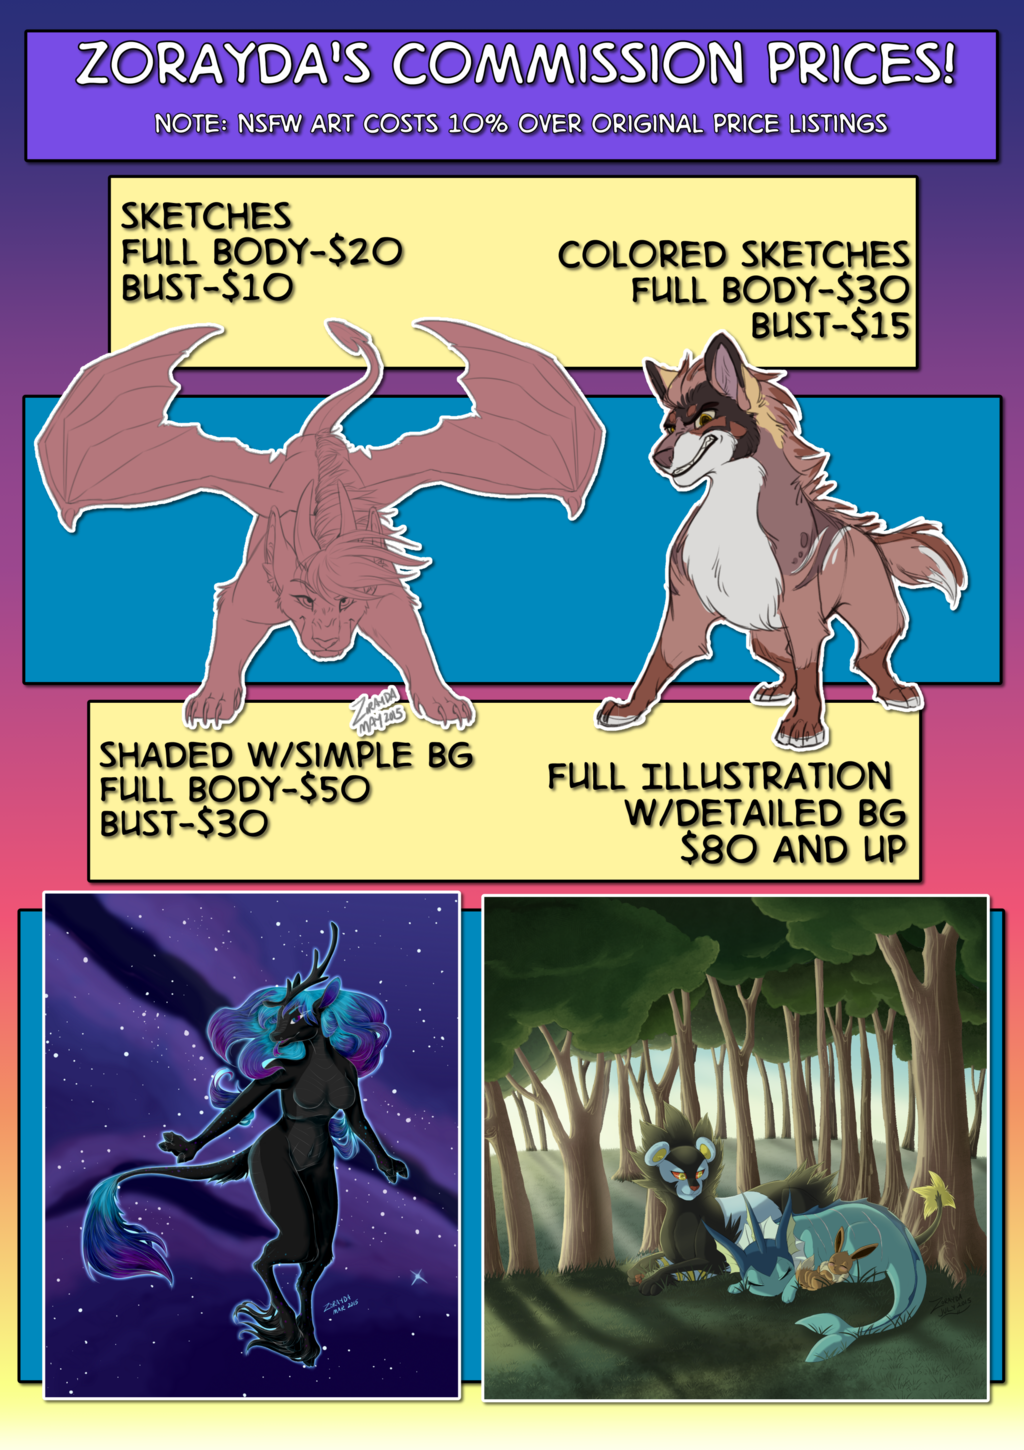 Commission Pricing as of 7/30/2015!